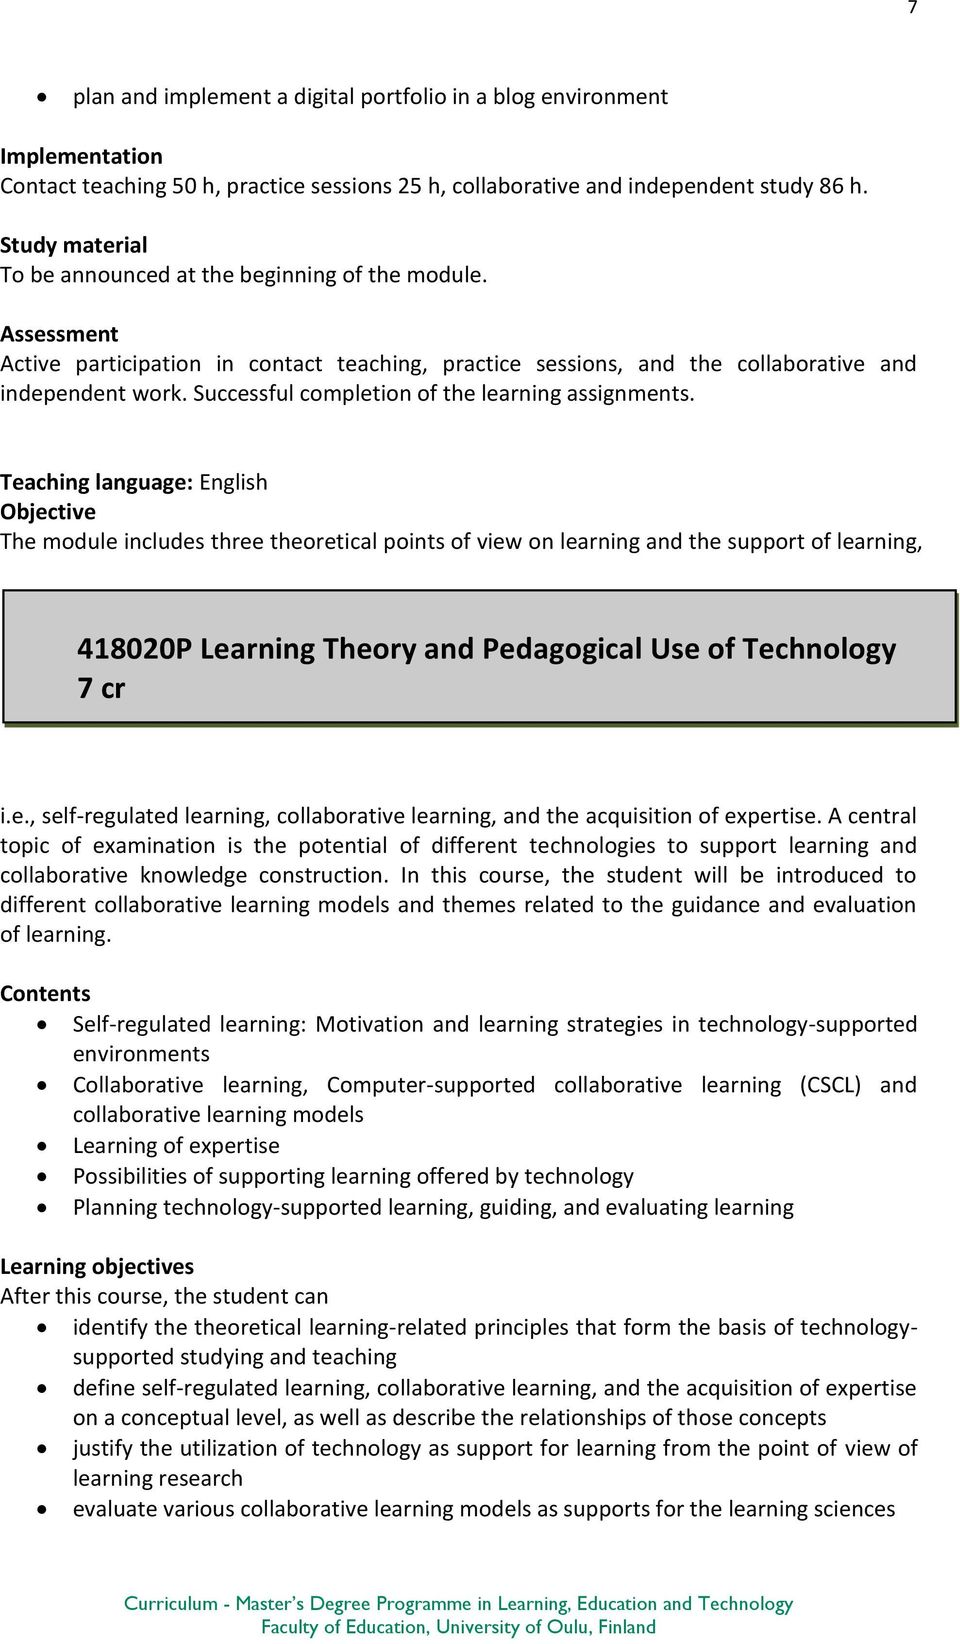 Teaching language: English The module includes three theoretical points of view on learning and the support of learning, 418020P Learning Theory and Pedagogical Use of Technology 7 cr i.e., self-regulated learning, collaborative learning, and the acquisition of expertise.